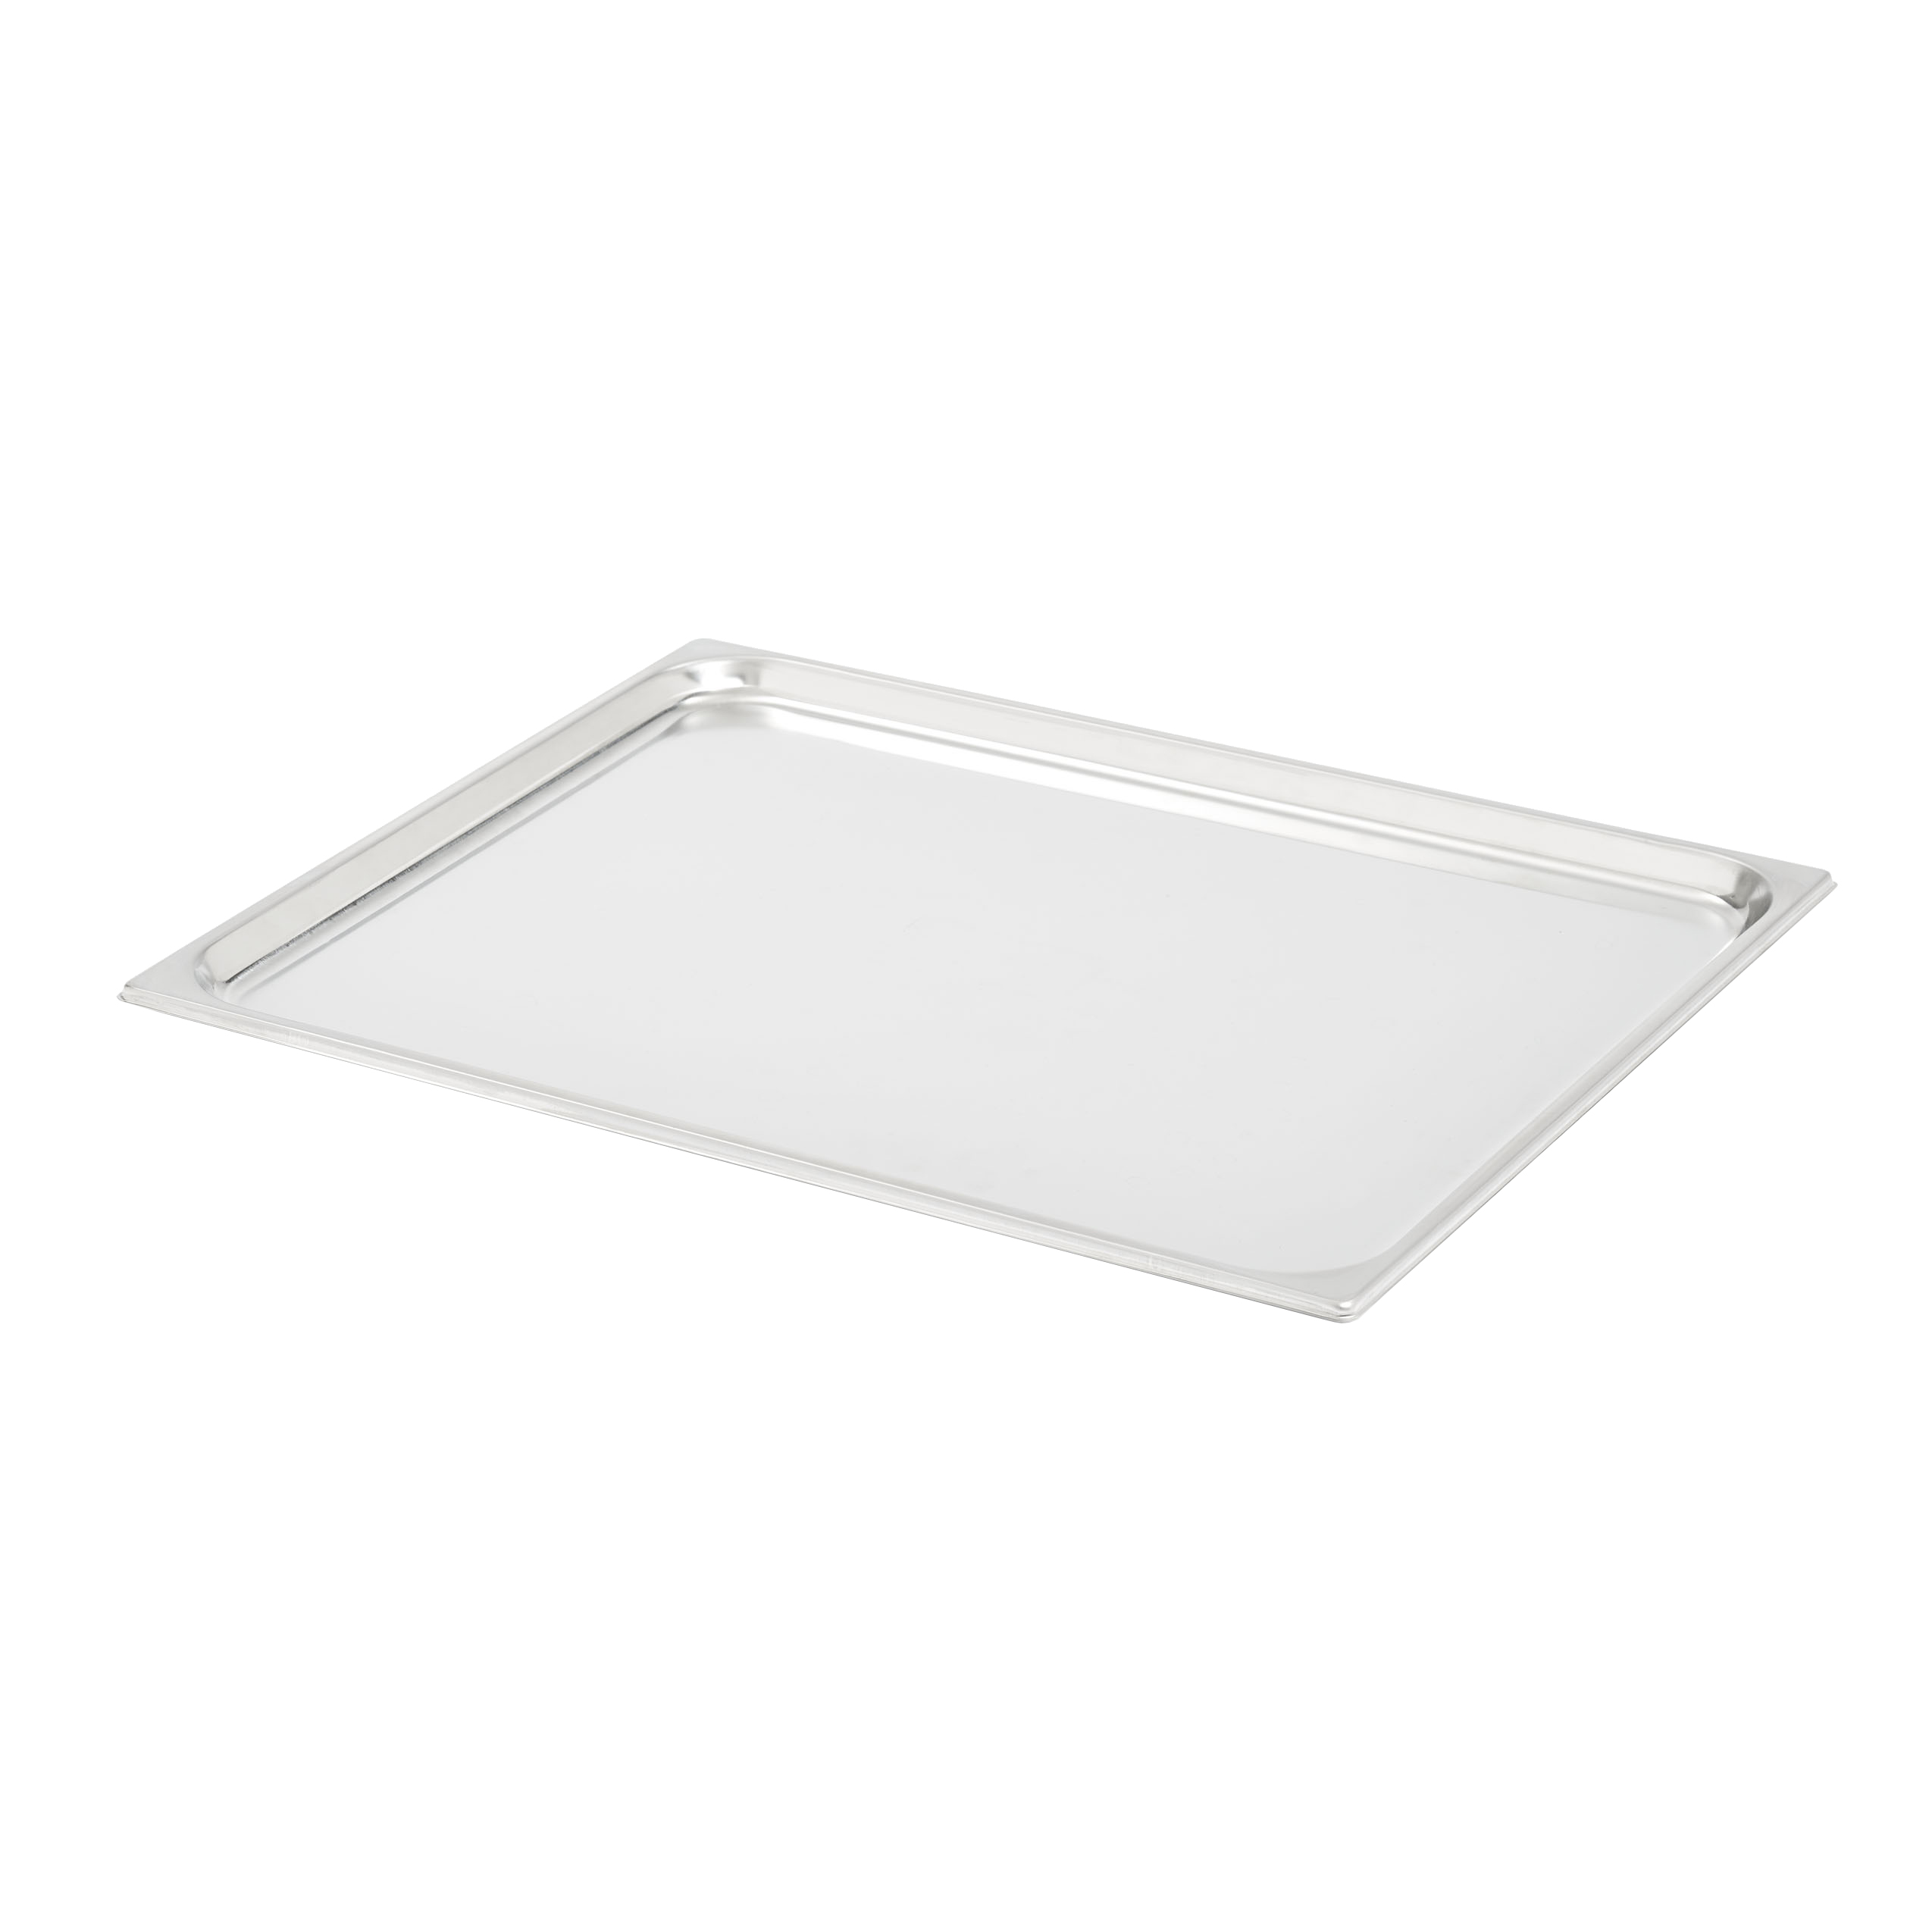 Vollrath V210201 steam table pan, stainless steel